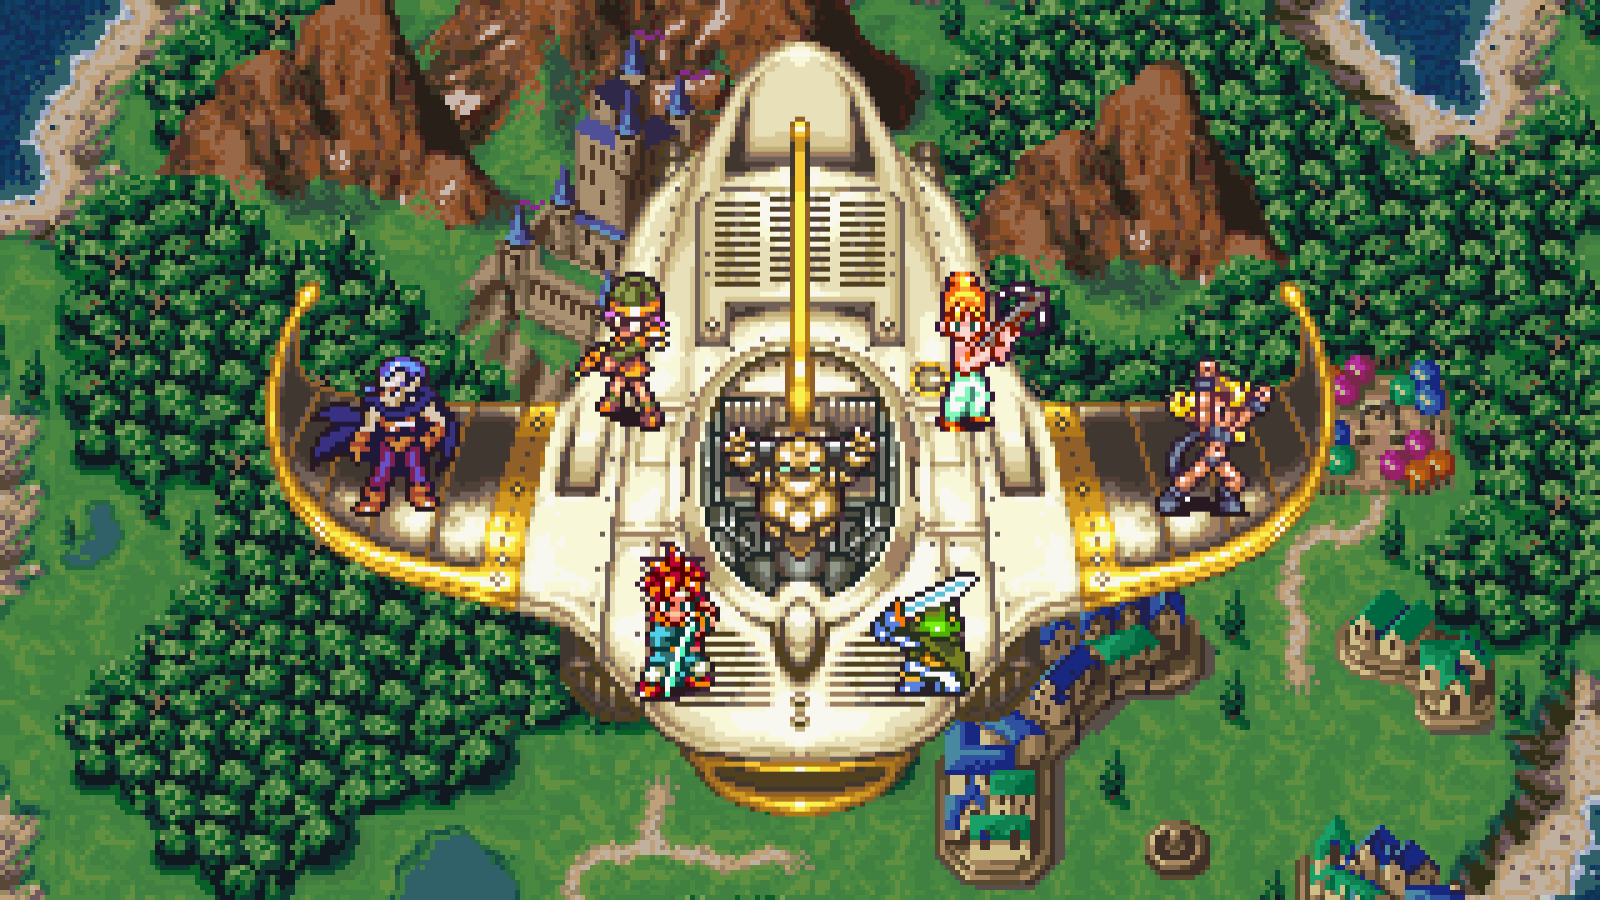 Without Chrono Trigger, The SNES Classic Is Just A Fancy Brick